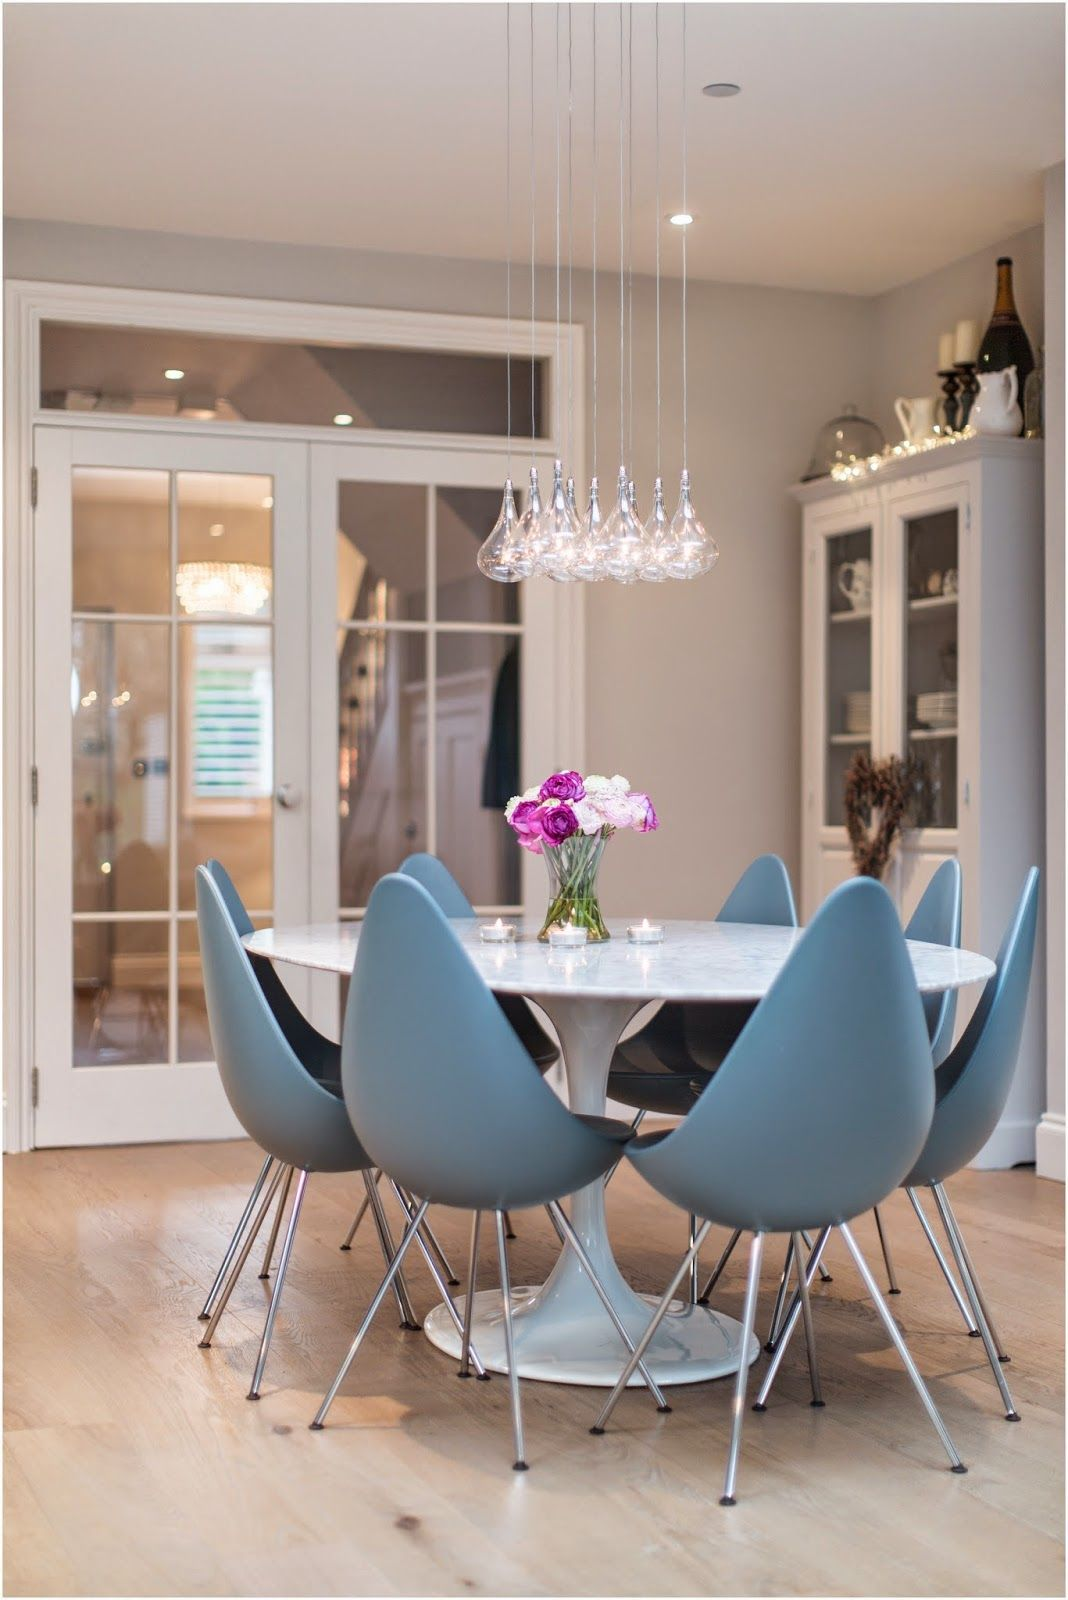 Best Hosting With Airbnb In 2019 Dinning Table Design Dining 640 x 480